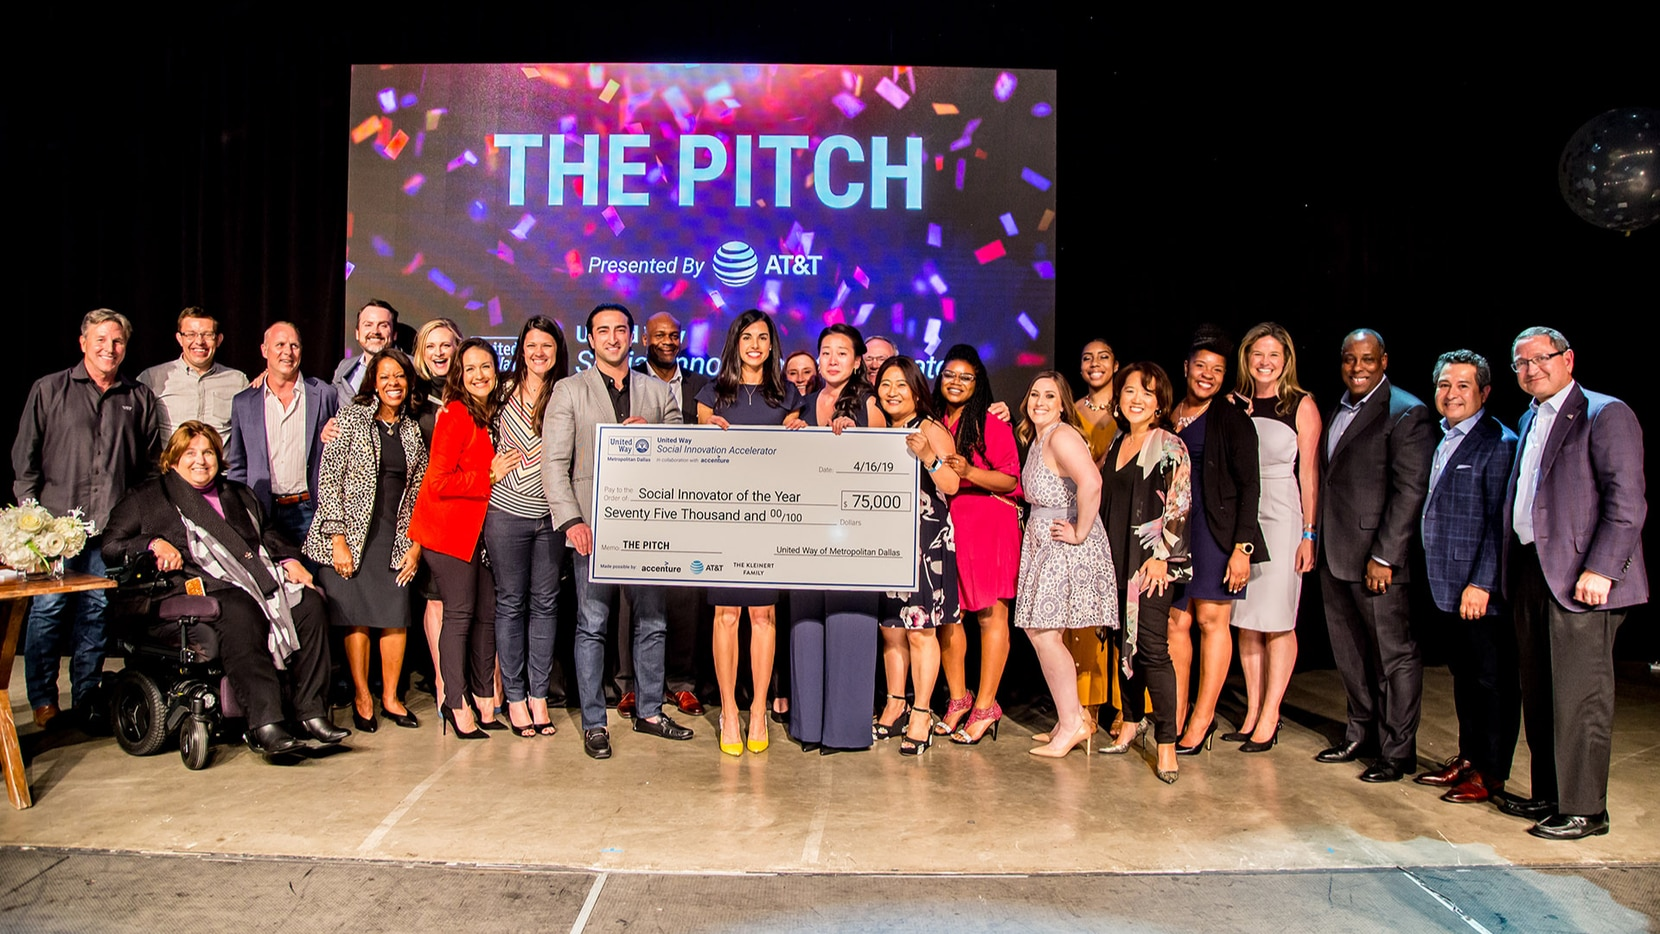 United Way Dallas 2019 Social Innovator of the Year, Poetic, on stage at The Pitch with their Social Innovation Accelerator mentors, judges panel and supporters.